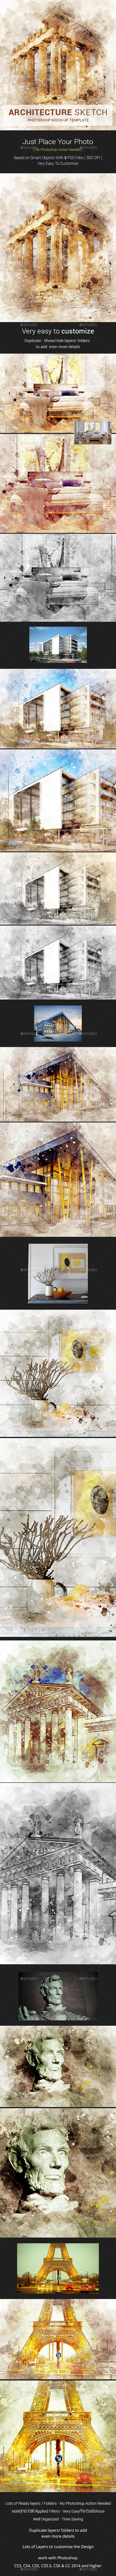 Architecture Sketch Photoshop Template Mock-Ups - Photo Templates Graphics